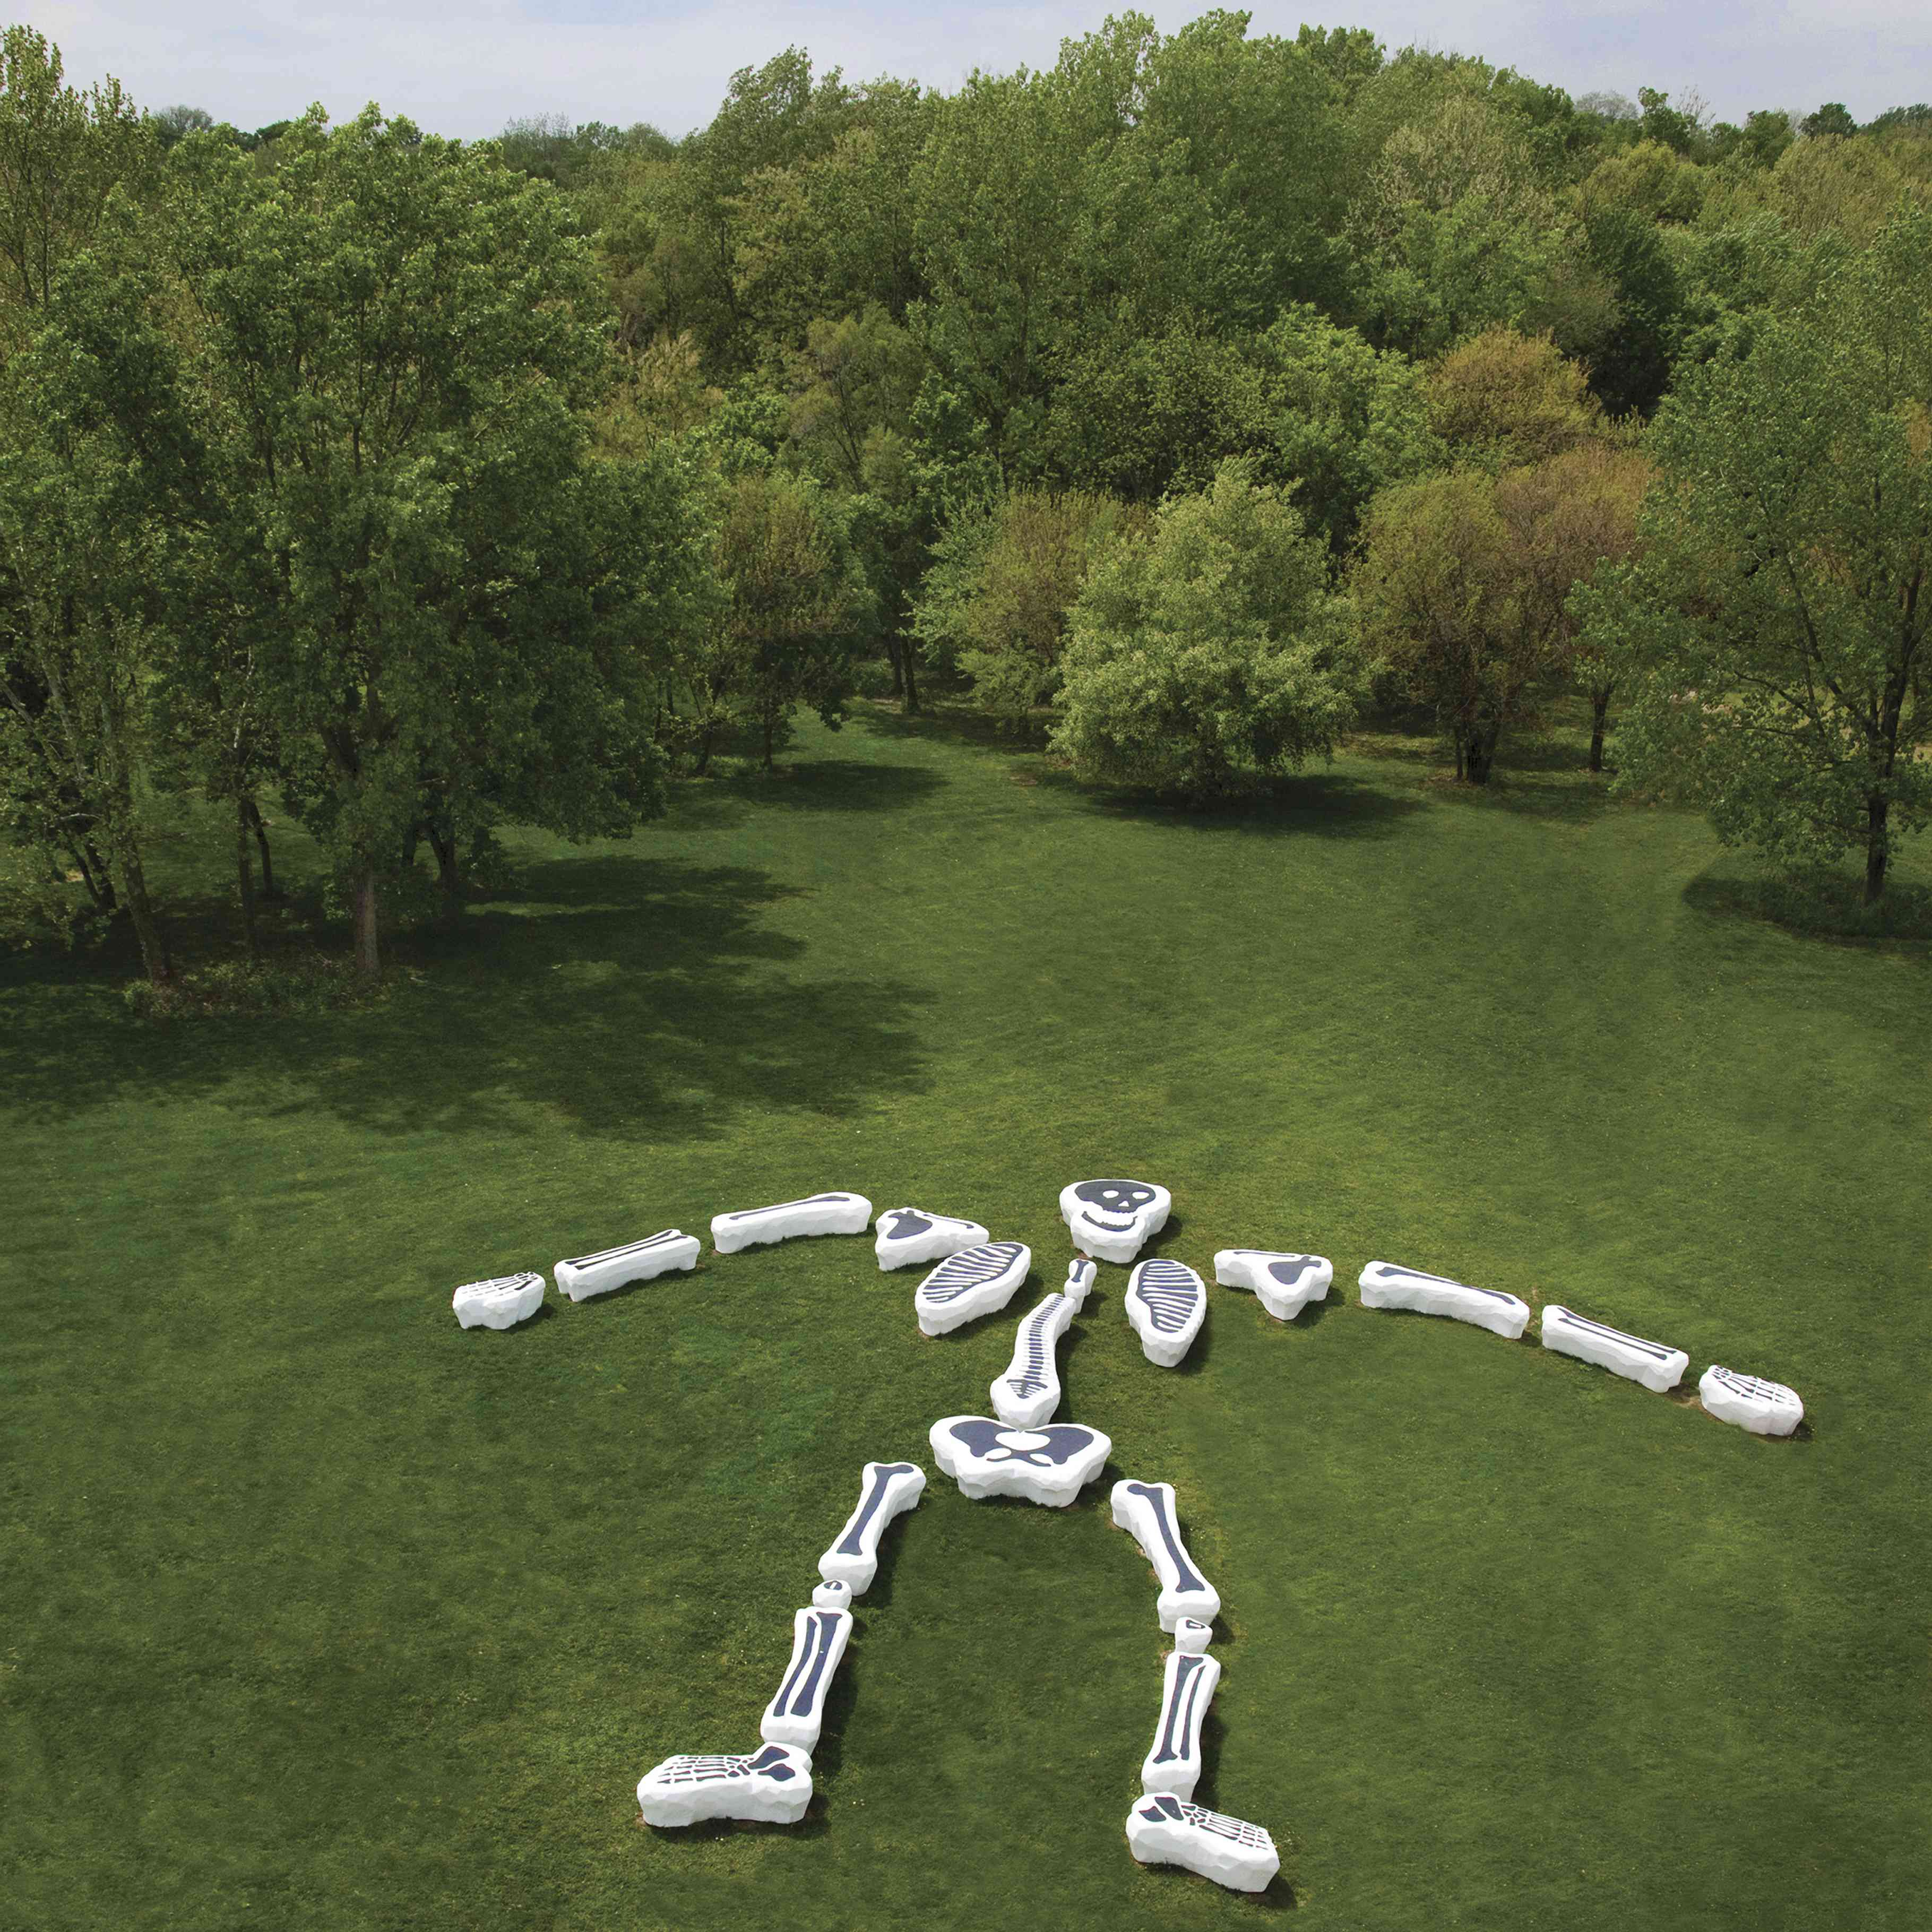 Aerial view of a cartoonish skeleton sculpture composed of painted benches splayed out on a field